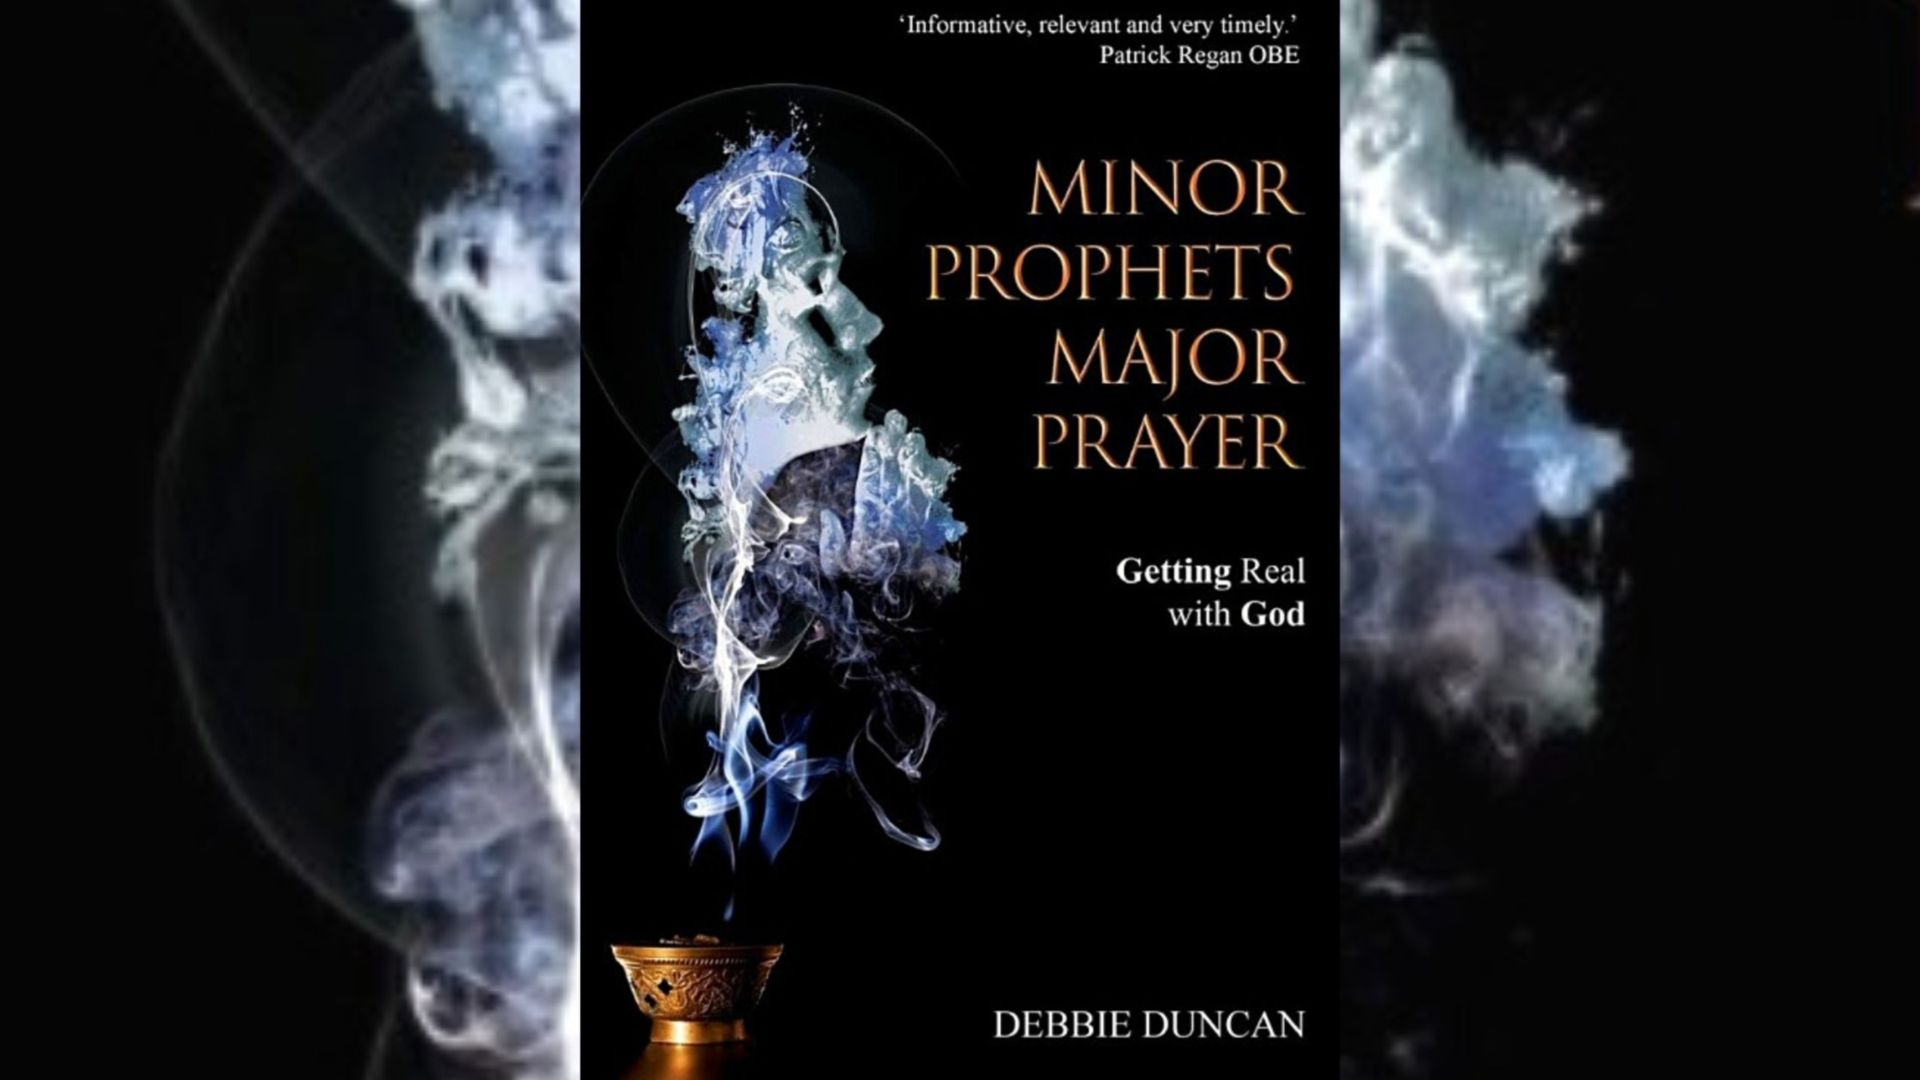 A new book by Debbie Duncan - Minor Prophets, Major Prayer